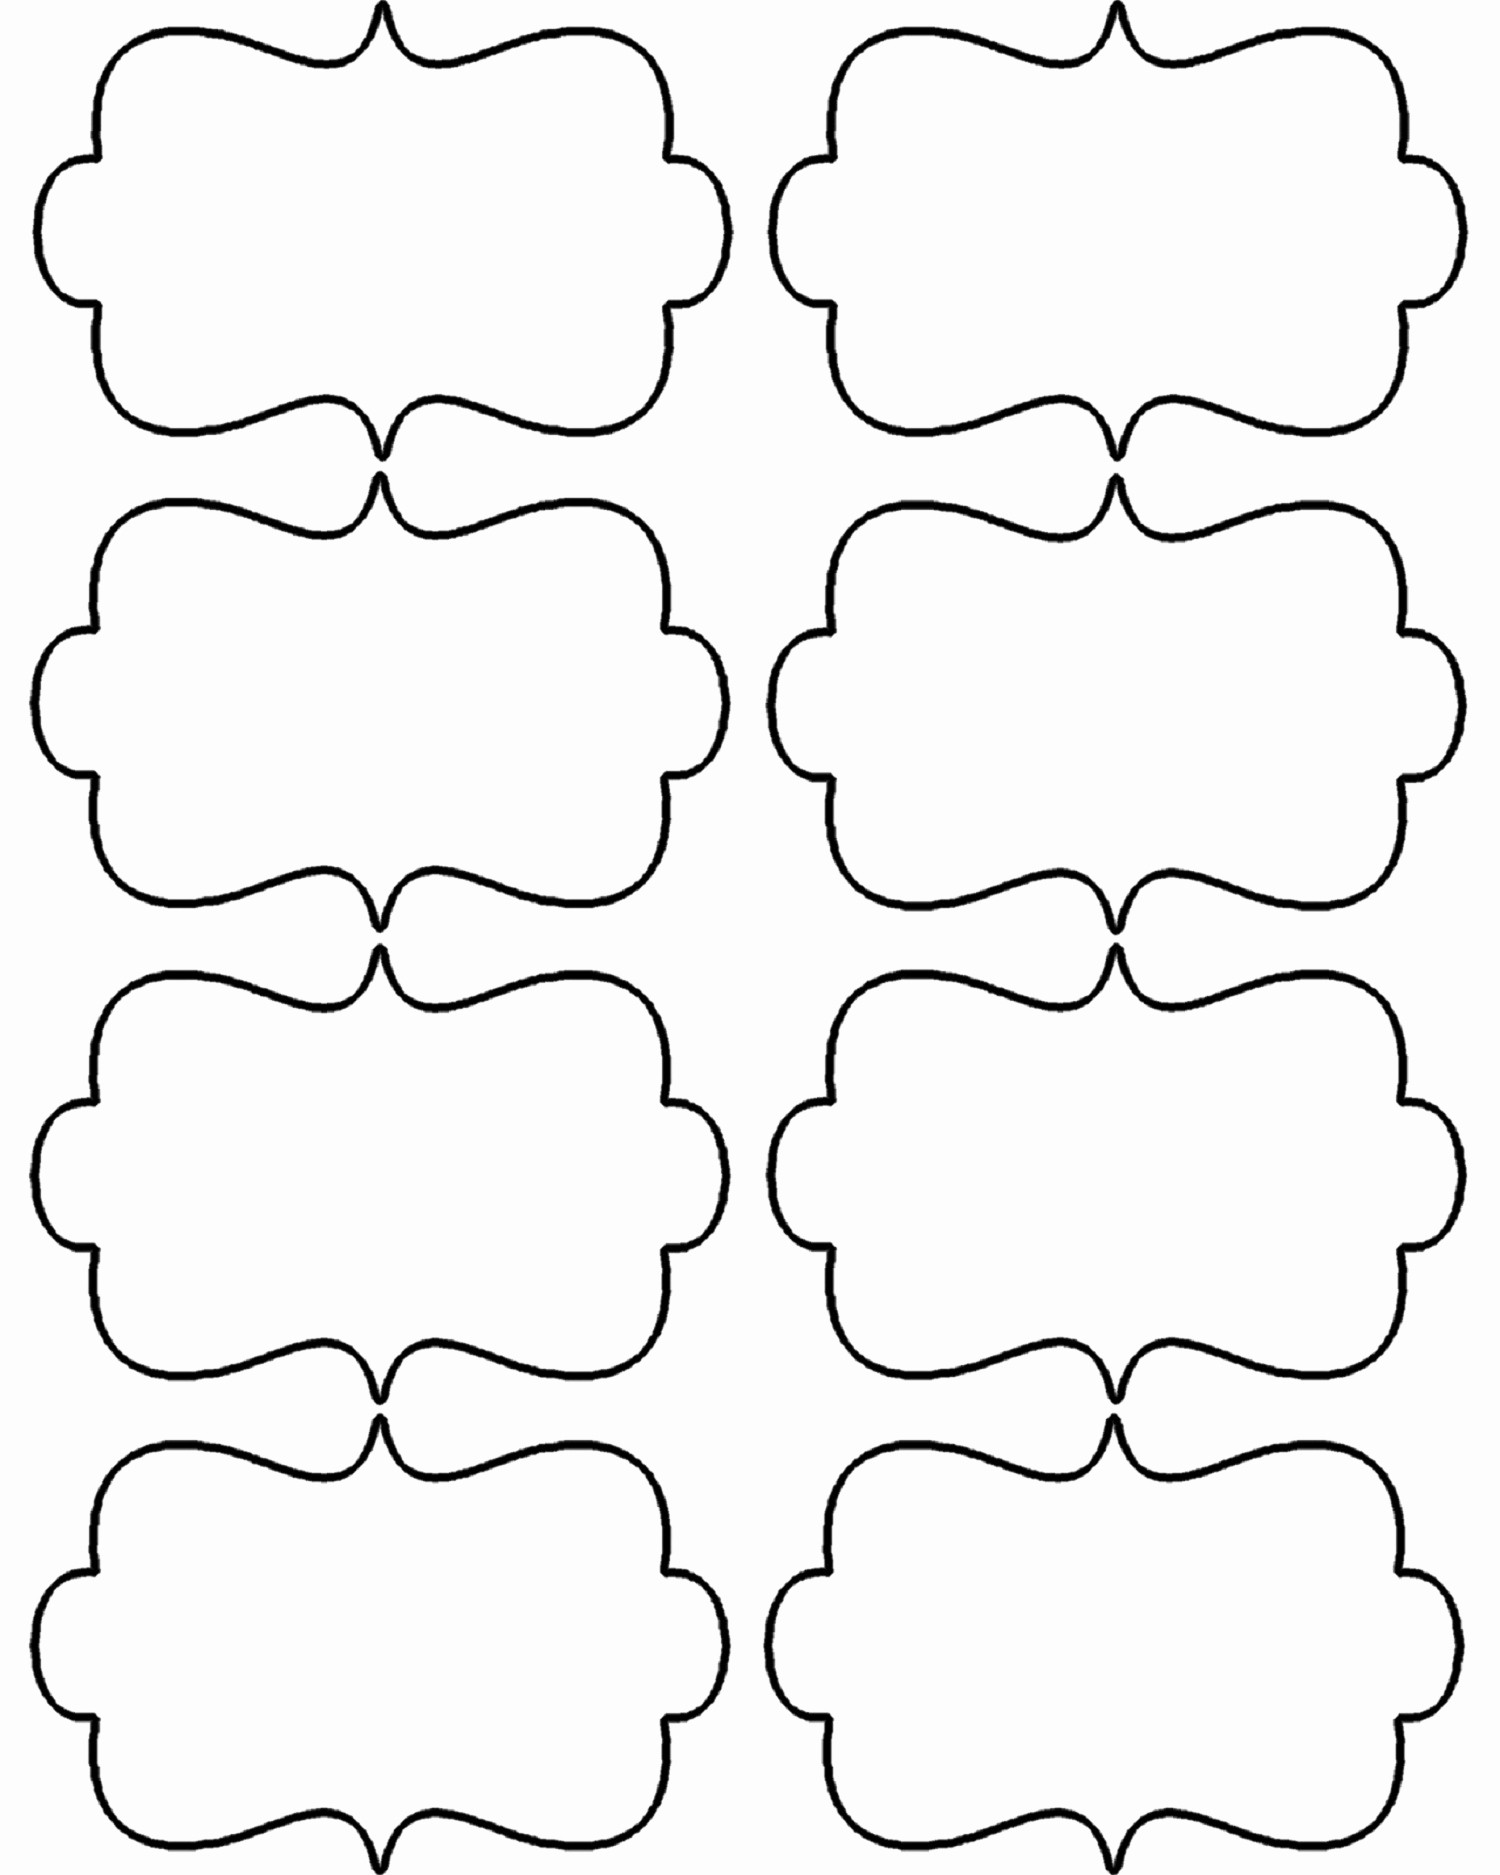 Free Template for Name Tags New Free Printable Gift Tags for Cute Tags